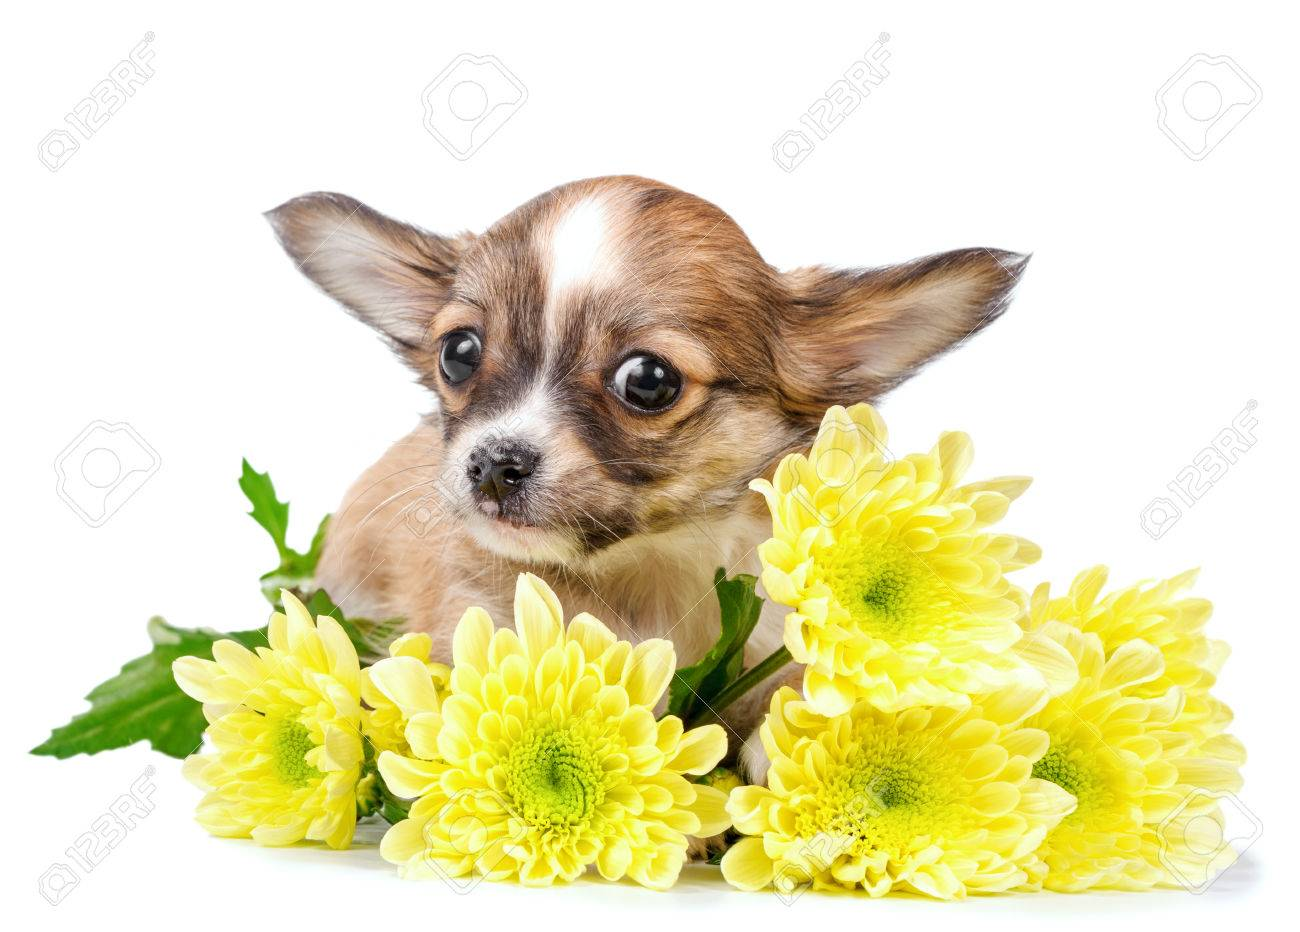 Cute Chihuahua Puppy With Yellow Flowers Close Up Isolated On